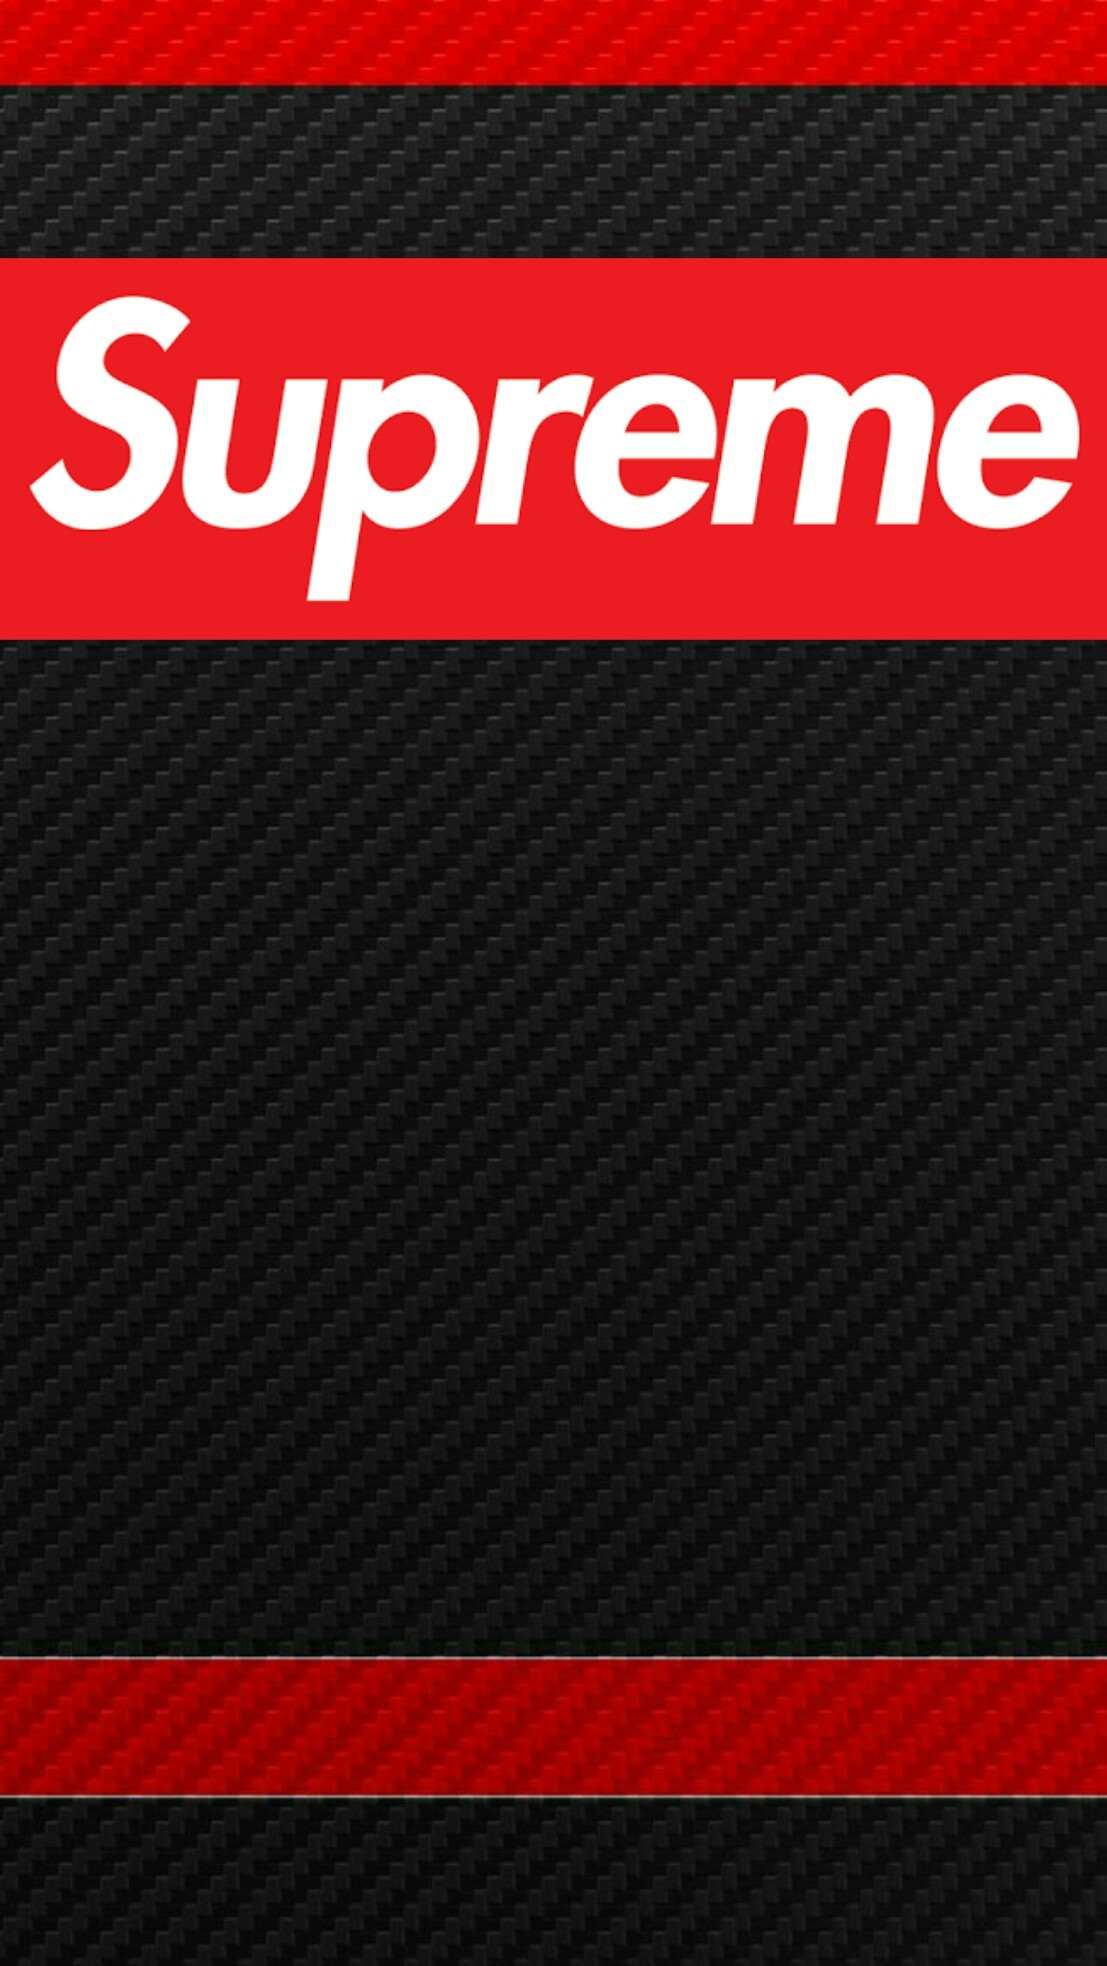 Download Bape And Supreme Wallpaper Hd Backgrounds Download Itl Cat